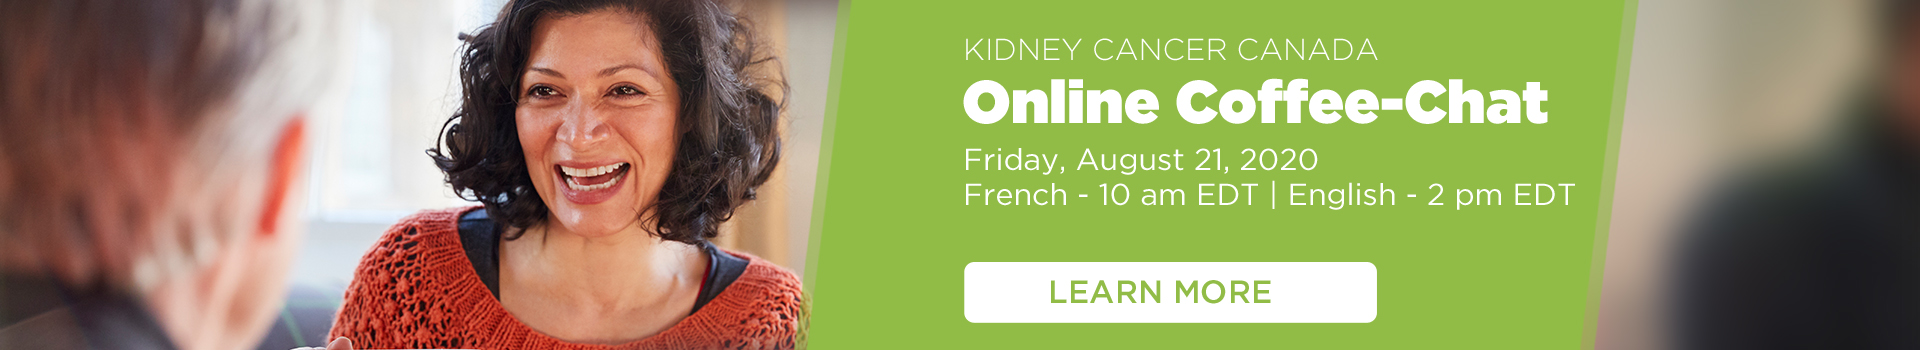 Kidney Cancer Canada - Online Coffee Chat